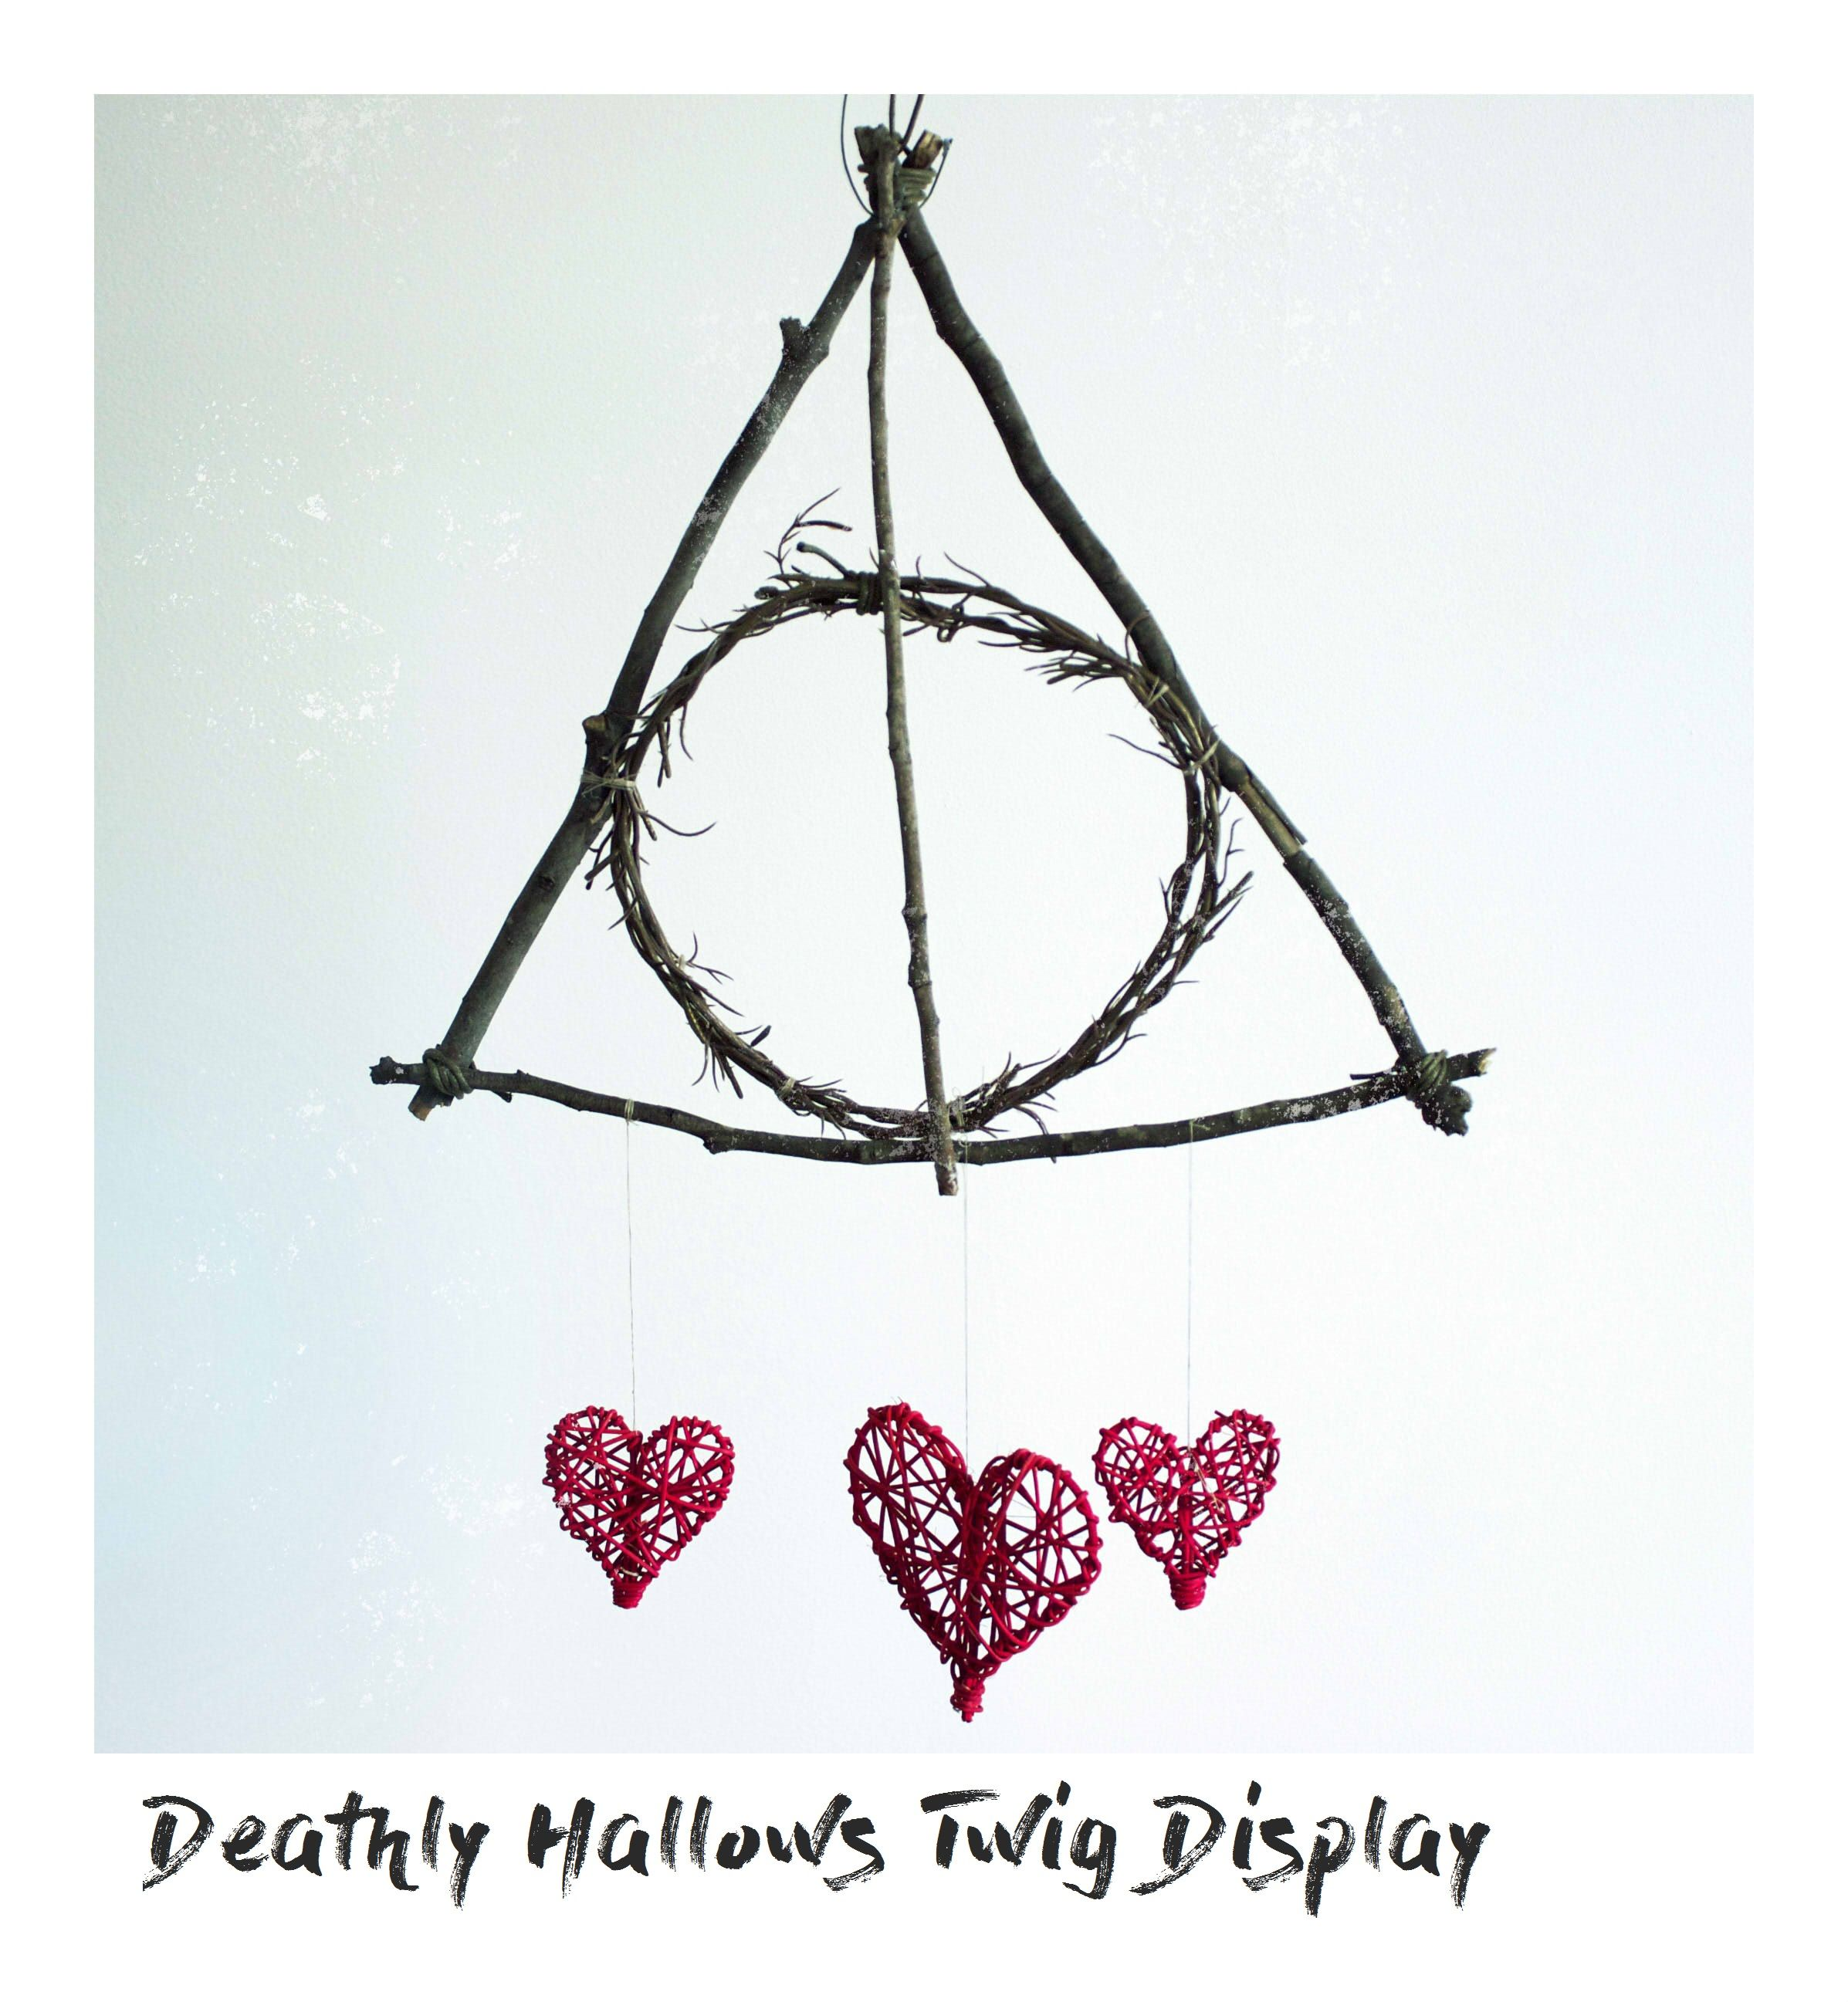 Deathly Hallows twig display decor | DIY Projects | TJSOM | Pinterest